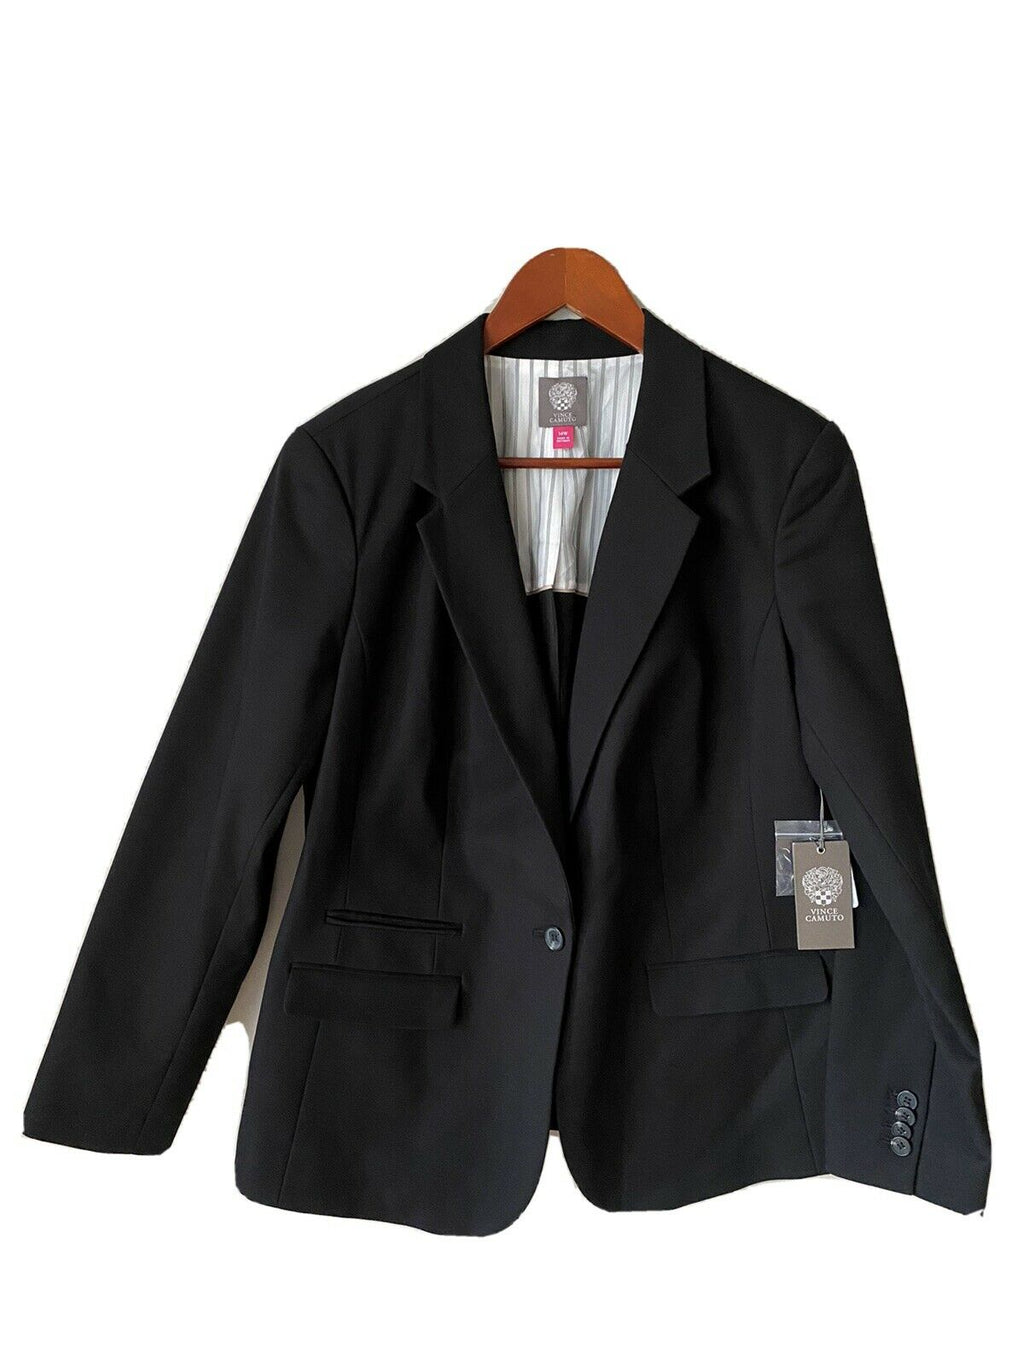 Vince Camuto Women's Plus Size 14W Black Jacket Blazer Stretch Lined Short NWT